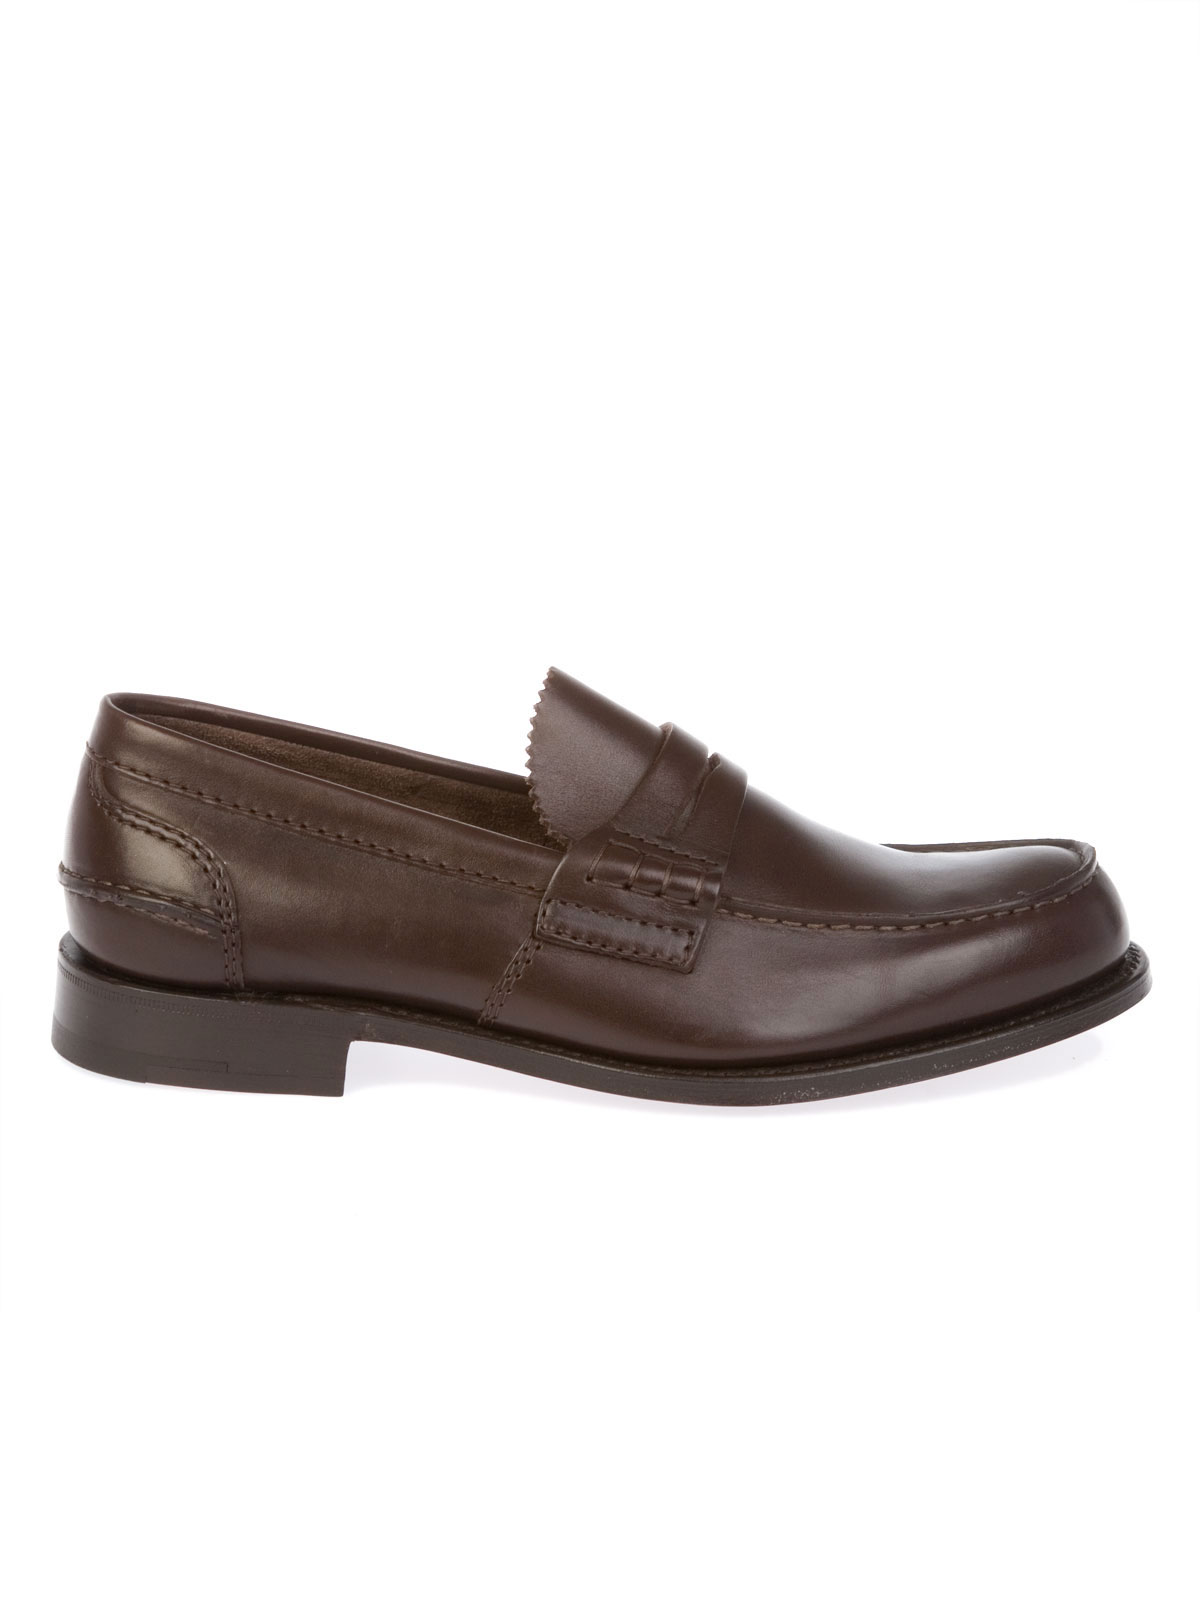 Picture of CHURCH'S | Pembrey Loafer